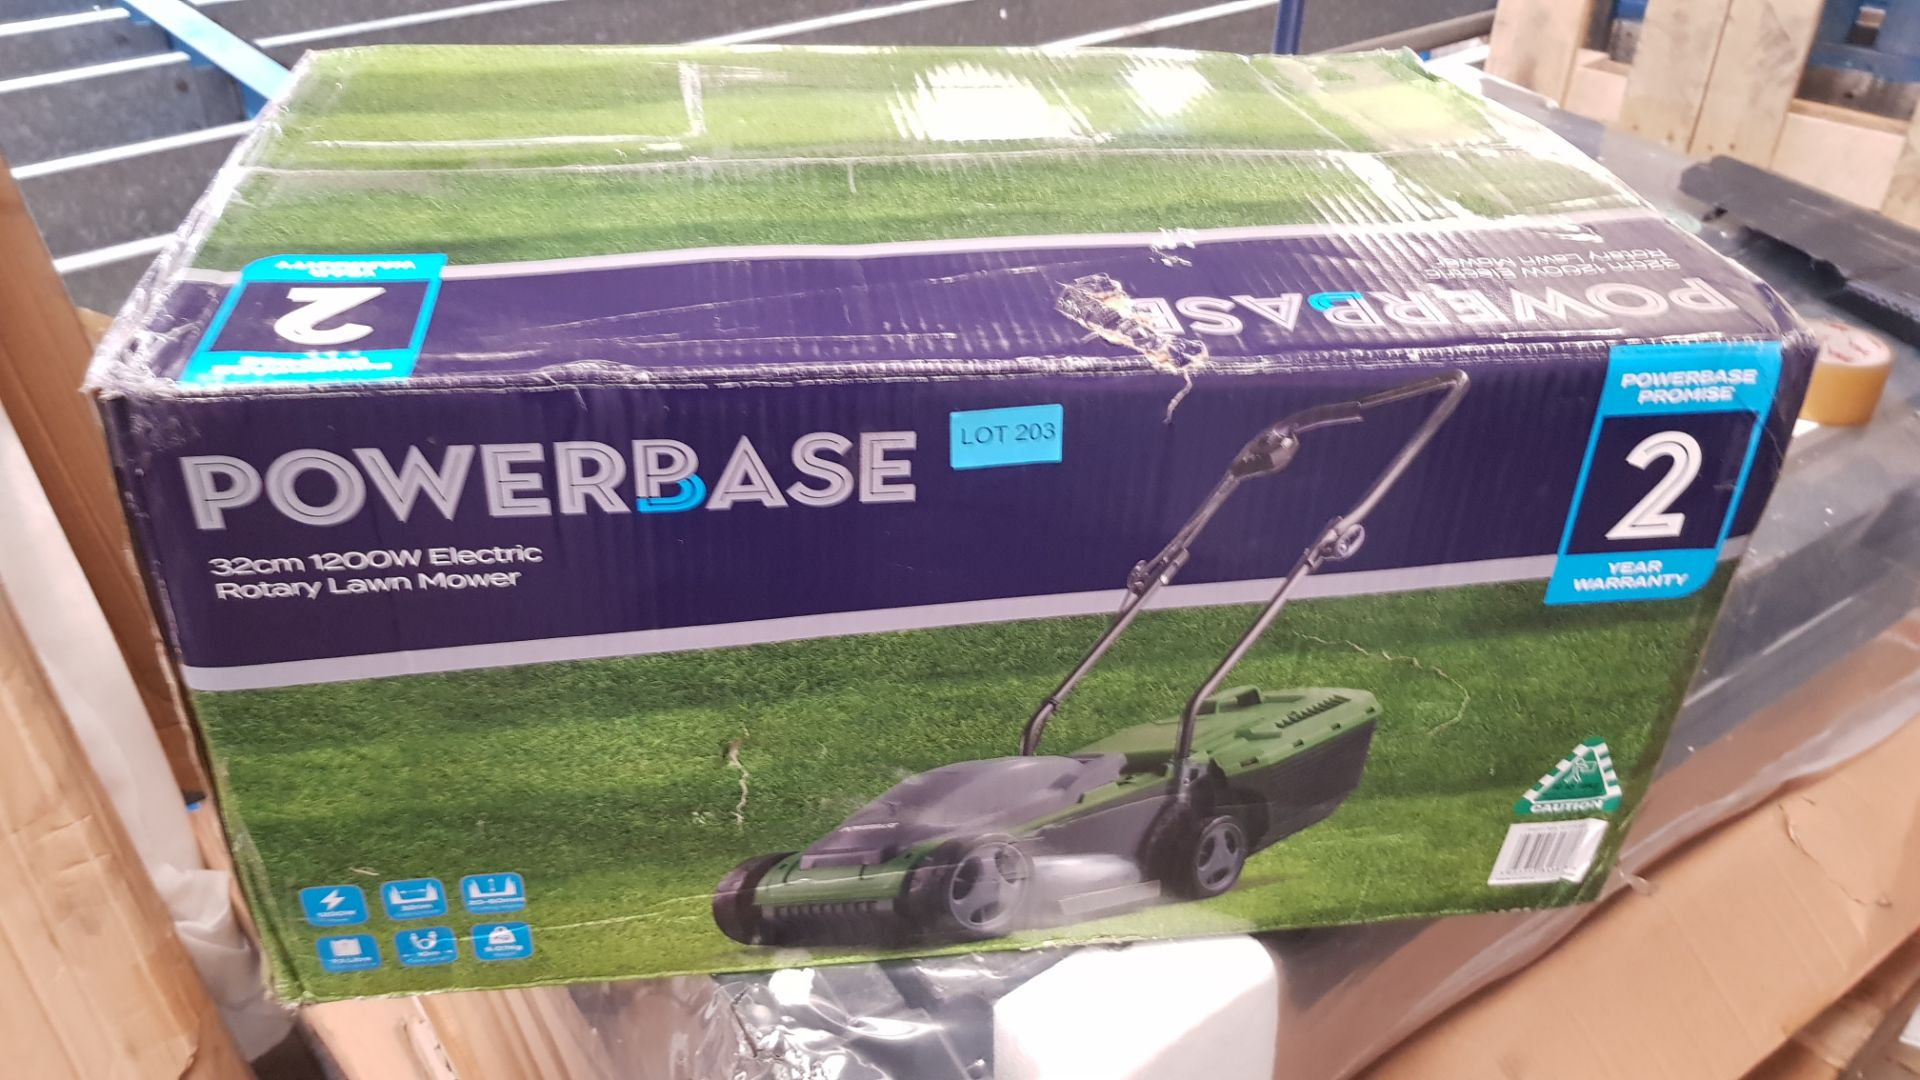 (P7) 1x Sovereign 32cm 1200W Electric Rotary Lawn Mower RRP £50. New, Sealed Unit With Very Slight - Image 3 of 5